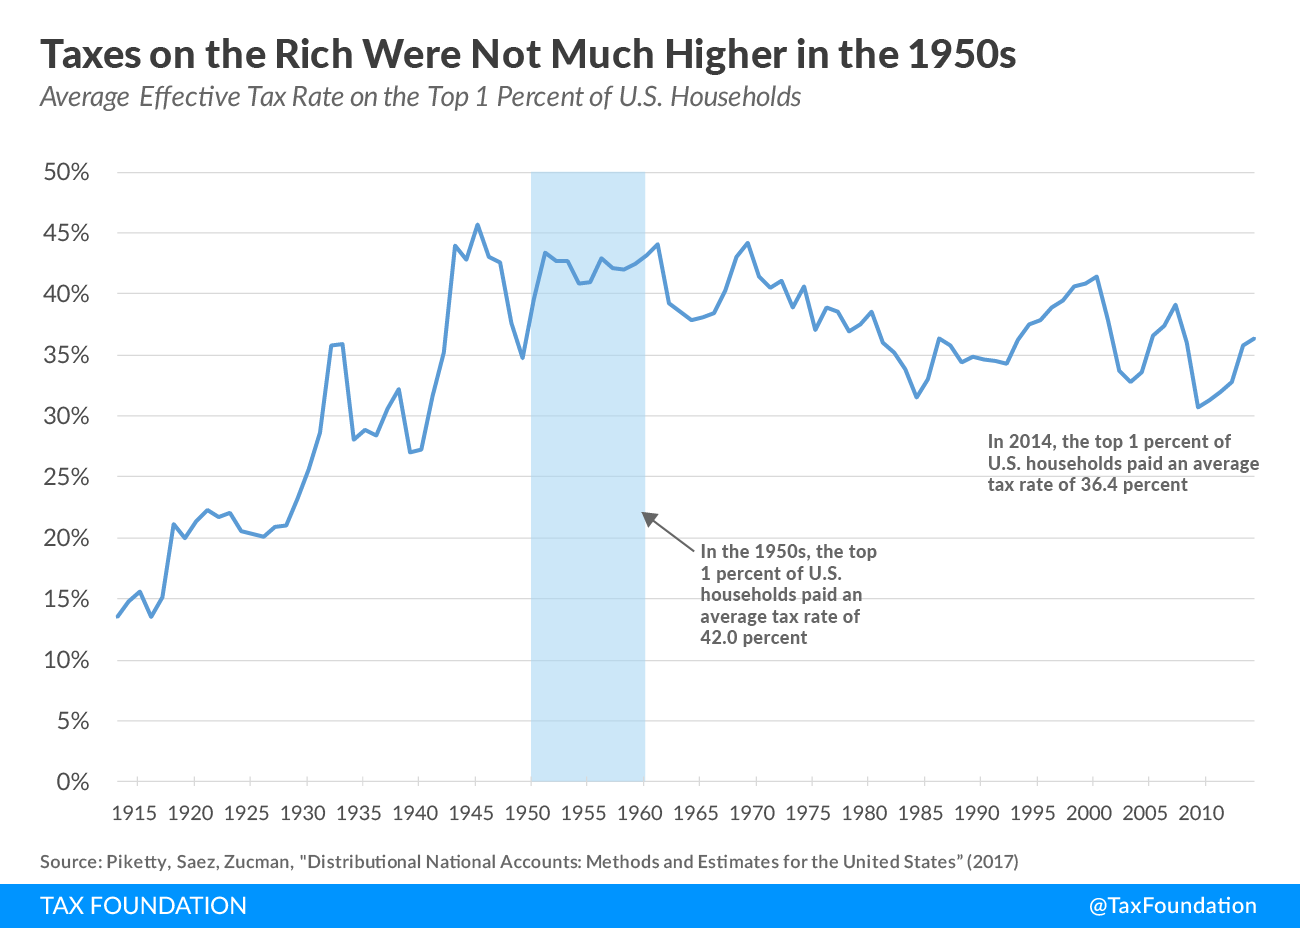 Average Effective Tax Rate on the Top 1 Percent of U.S. Households